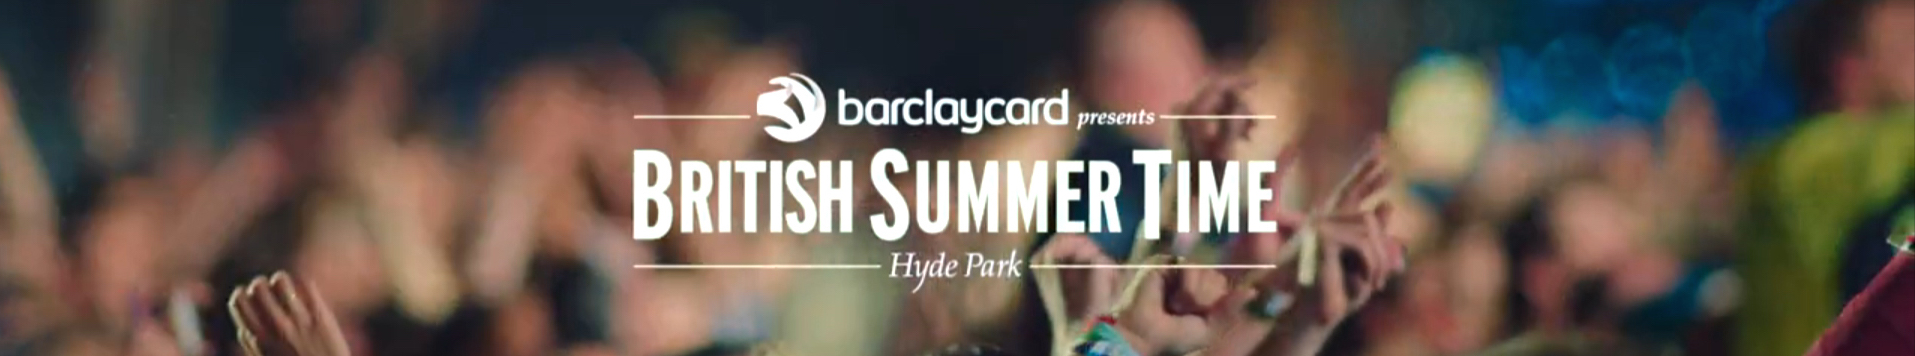 British Summer Time Hyde Park Tickets and Hospitality